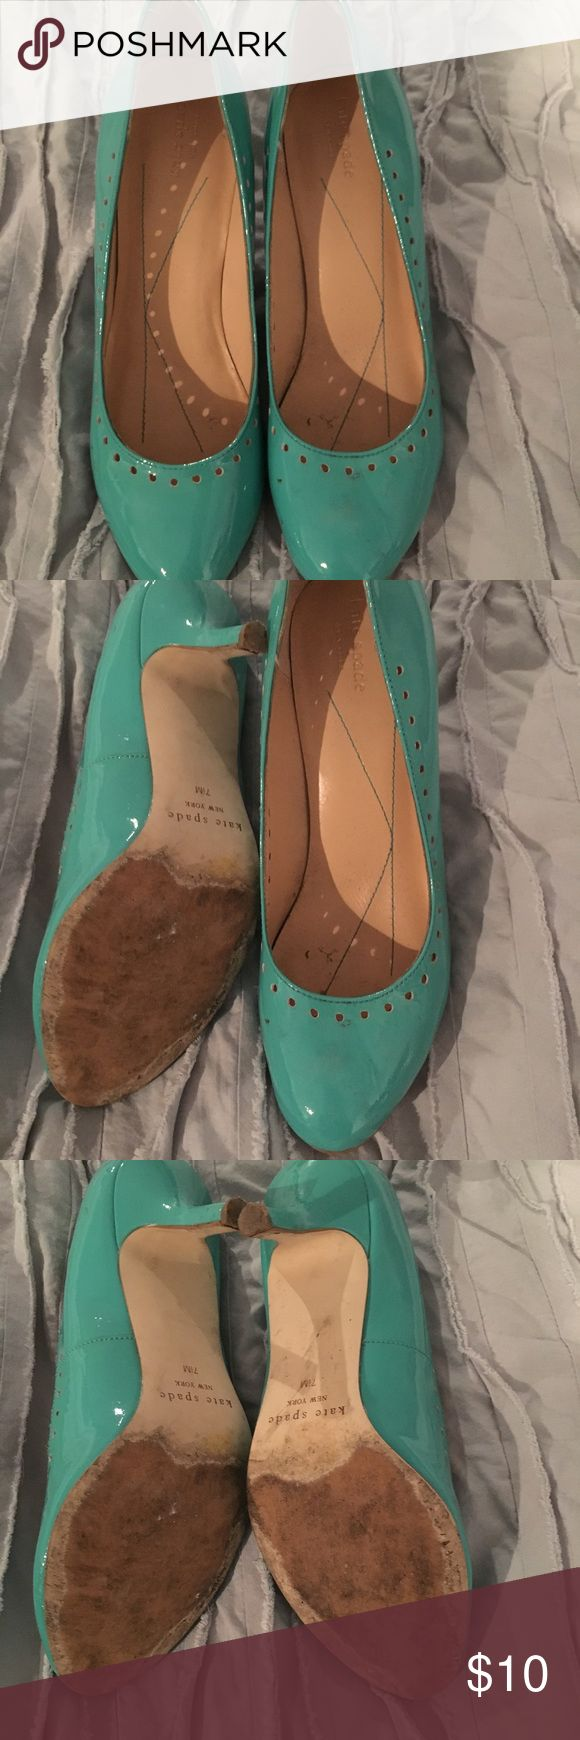 Kate spade Tiffany blue heels Kate spade Tiffany blue heels. 7.5m. Very worn heel.  Smoke free pet free home. kate spade Shoes Heels